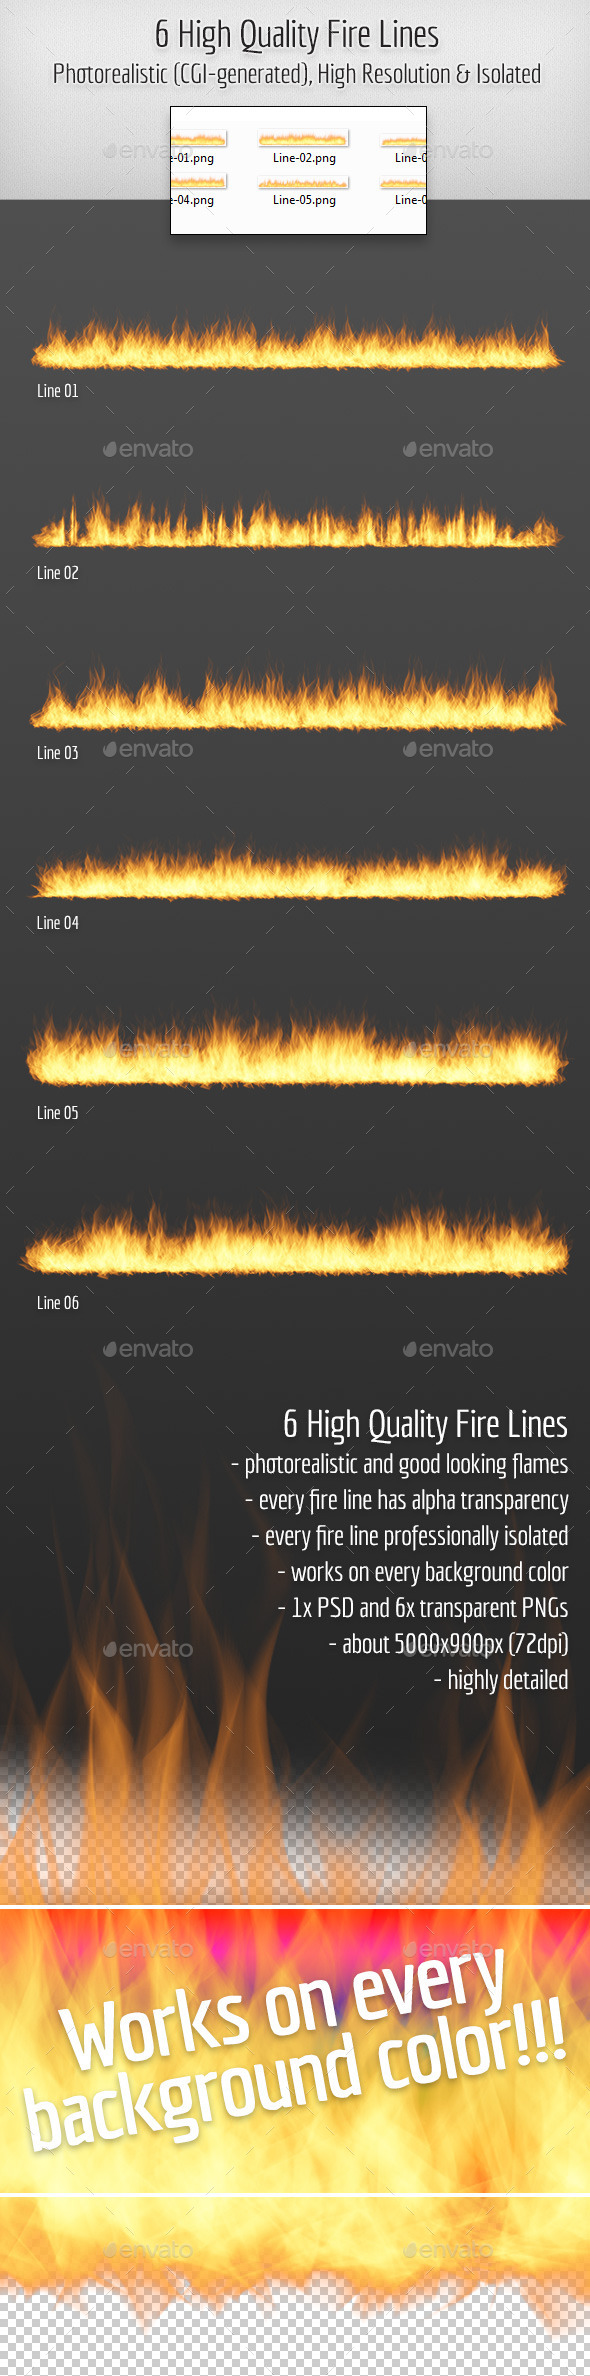 6 High Quality Hi-Res & Isolated CGI Fire Lines - Miscellaneous Graphics